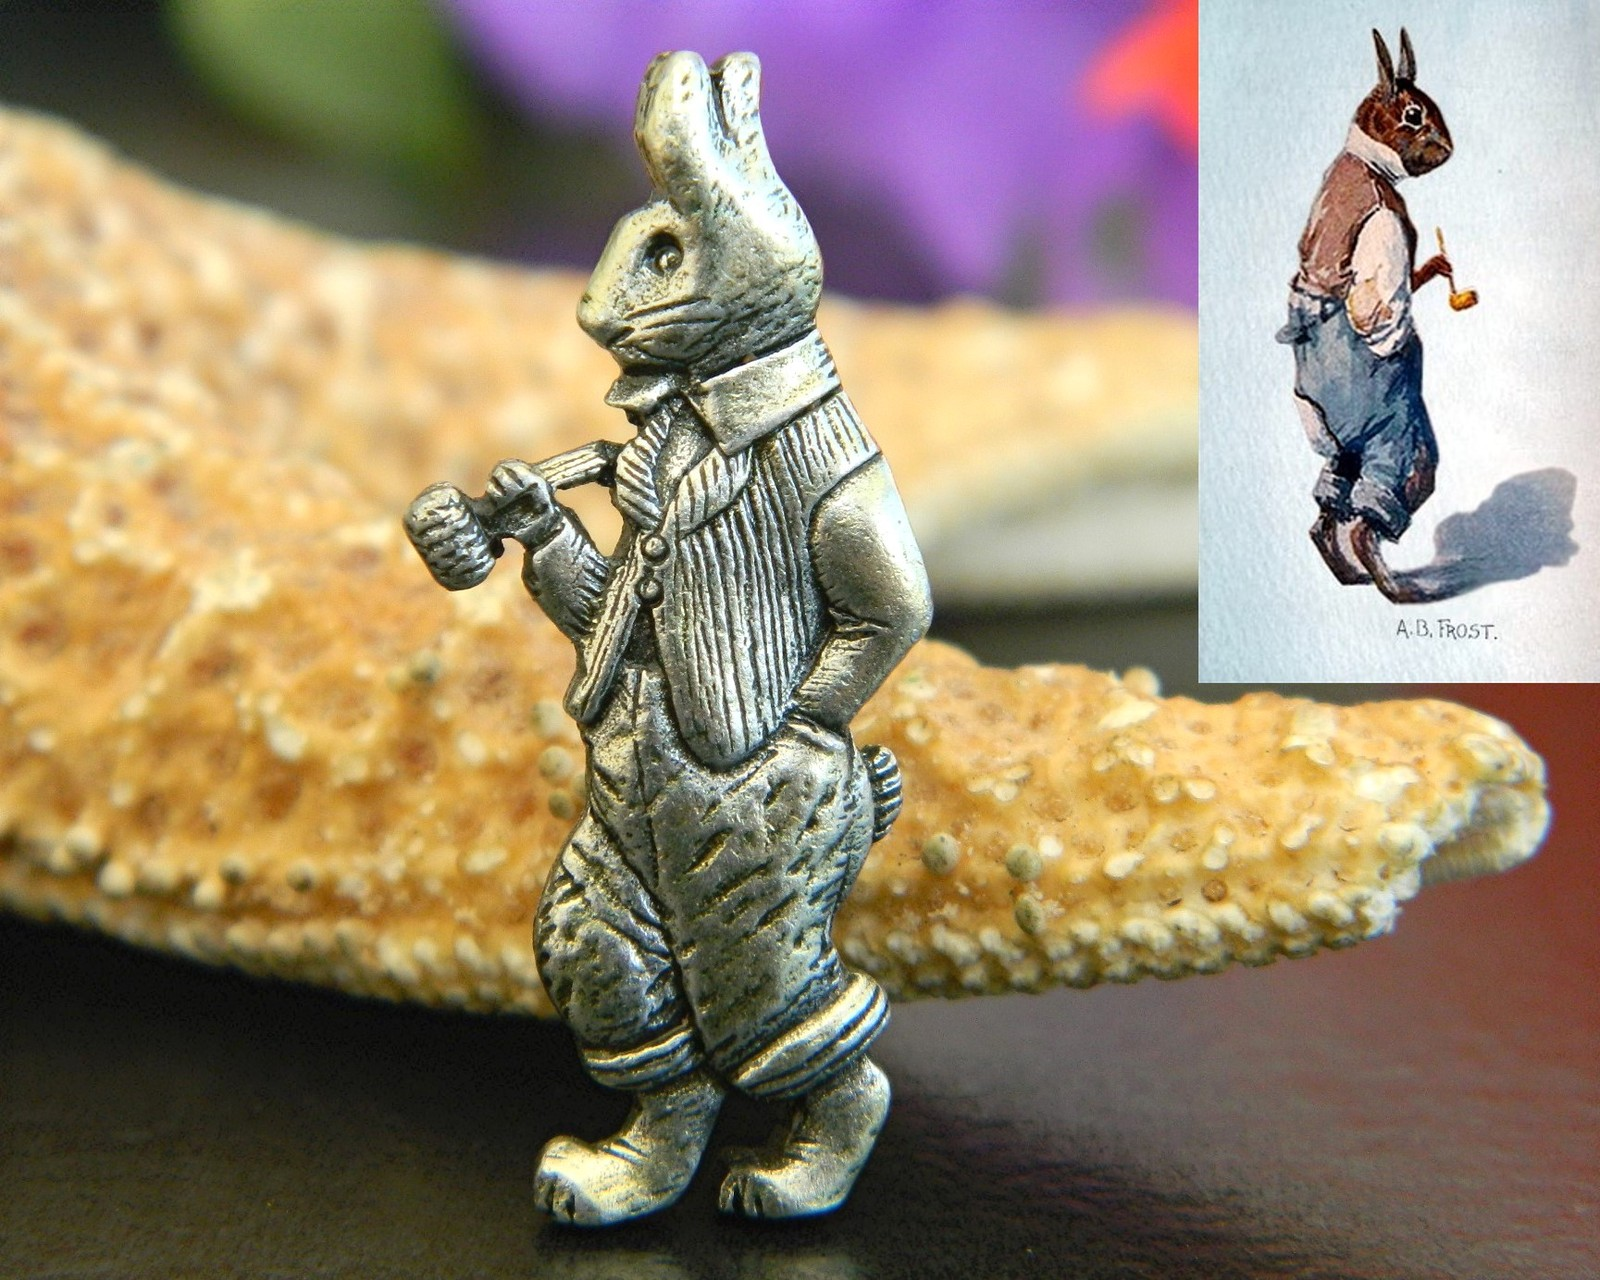 Vintage brer rabbit uncle remus brooch pin a.b. frost illustration rare